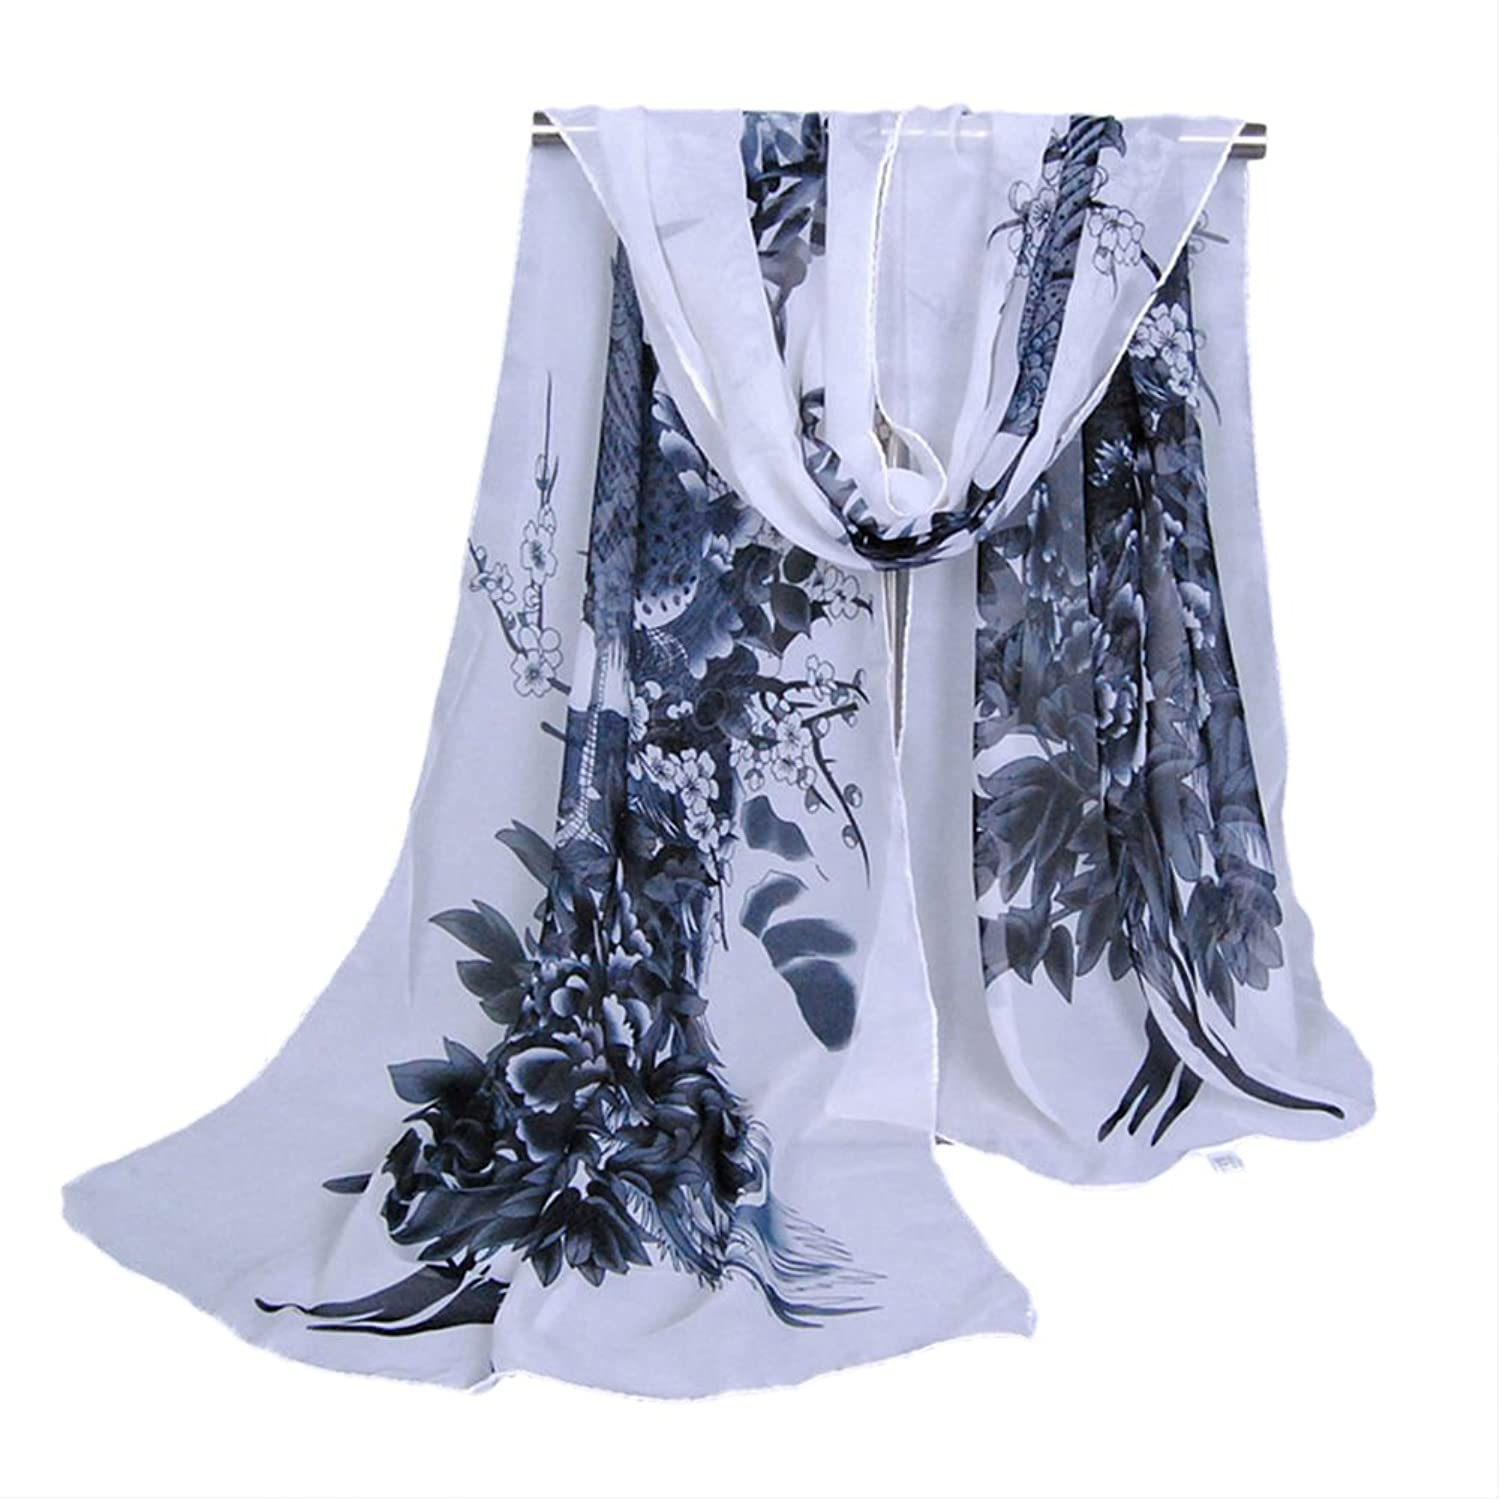 NEW Soft Chiffon Women Ladies Scarf Neck Shawl Scarf Scarves Beach Wrap Stole